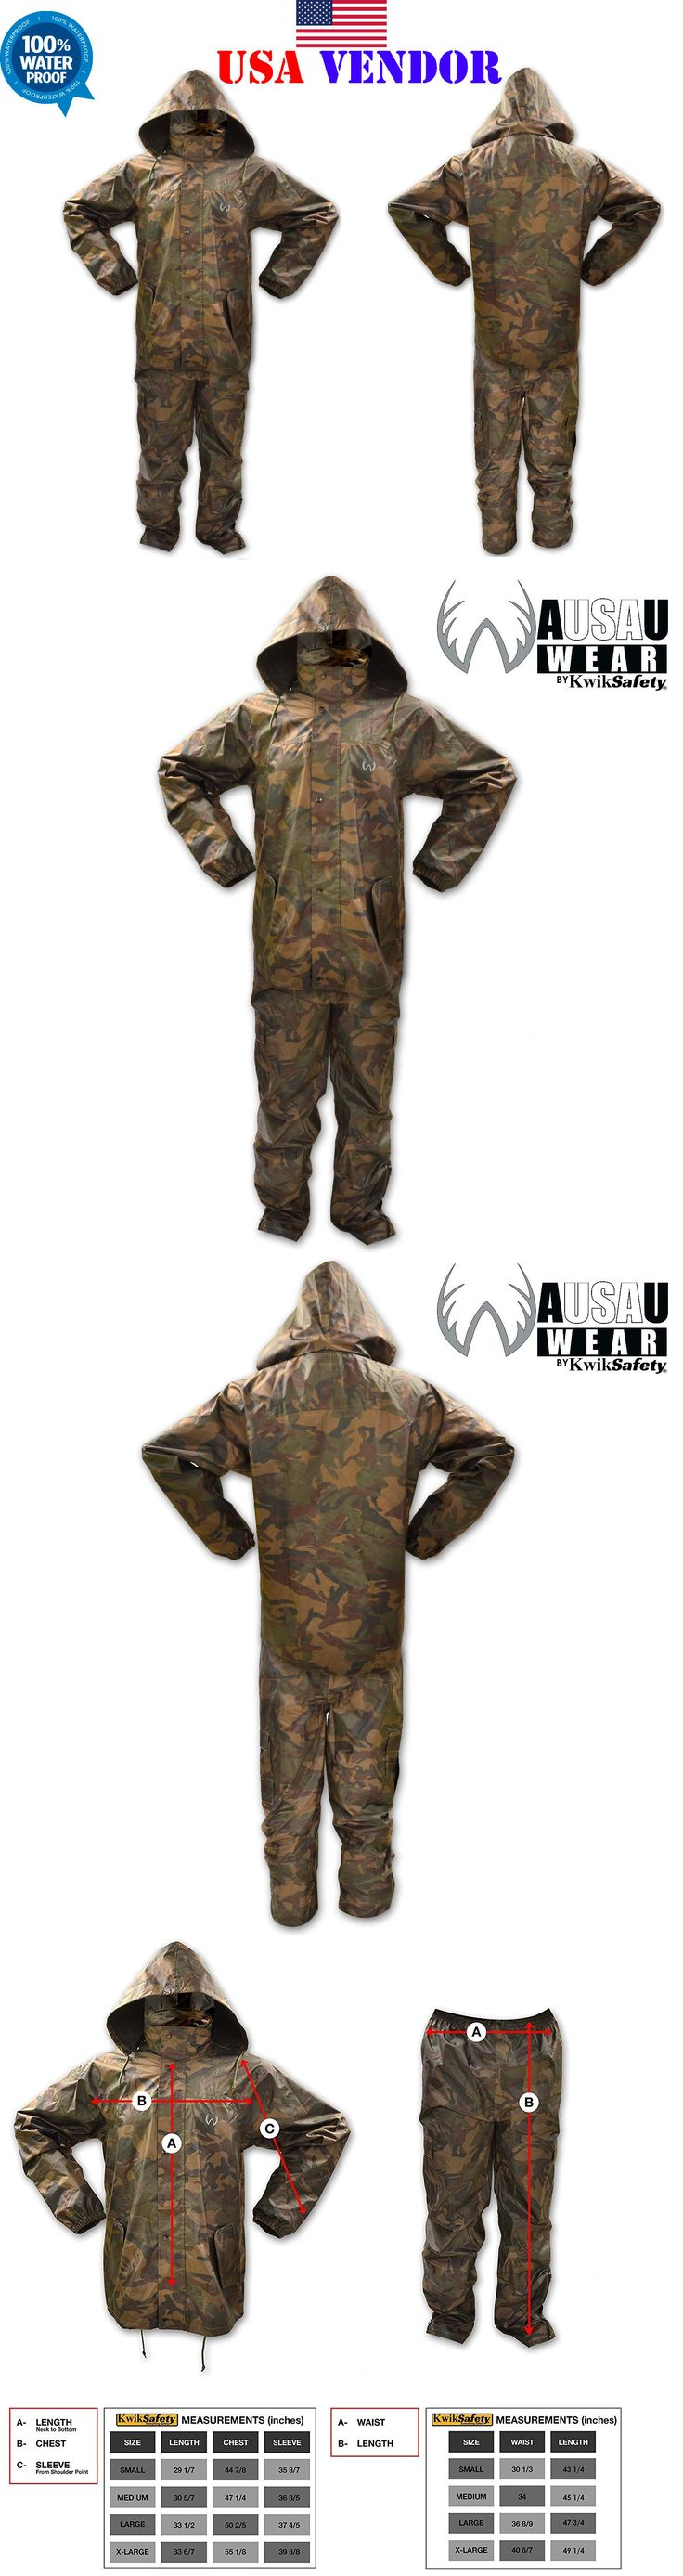 Jacket and Pant Sets 177872: Camouflage Rain Suit All Purpose Weatherproof Waterproof Camo Suit All Sizes -> BUY IT NOW ONLY: $49.99 on eBay!